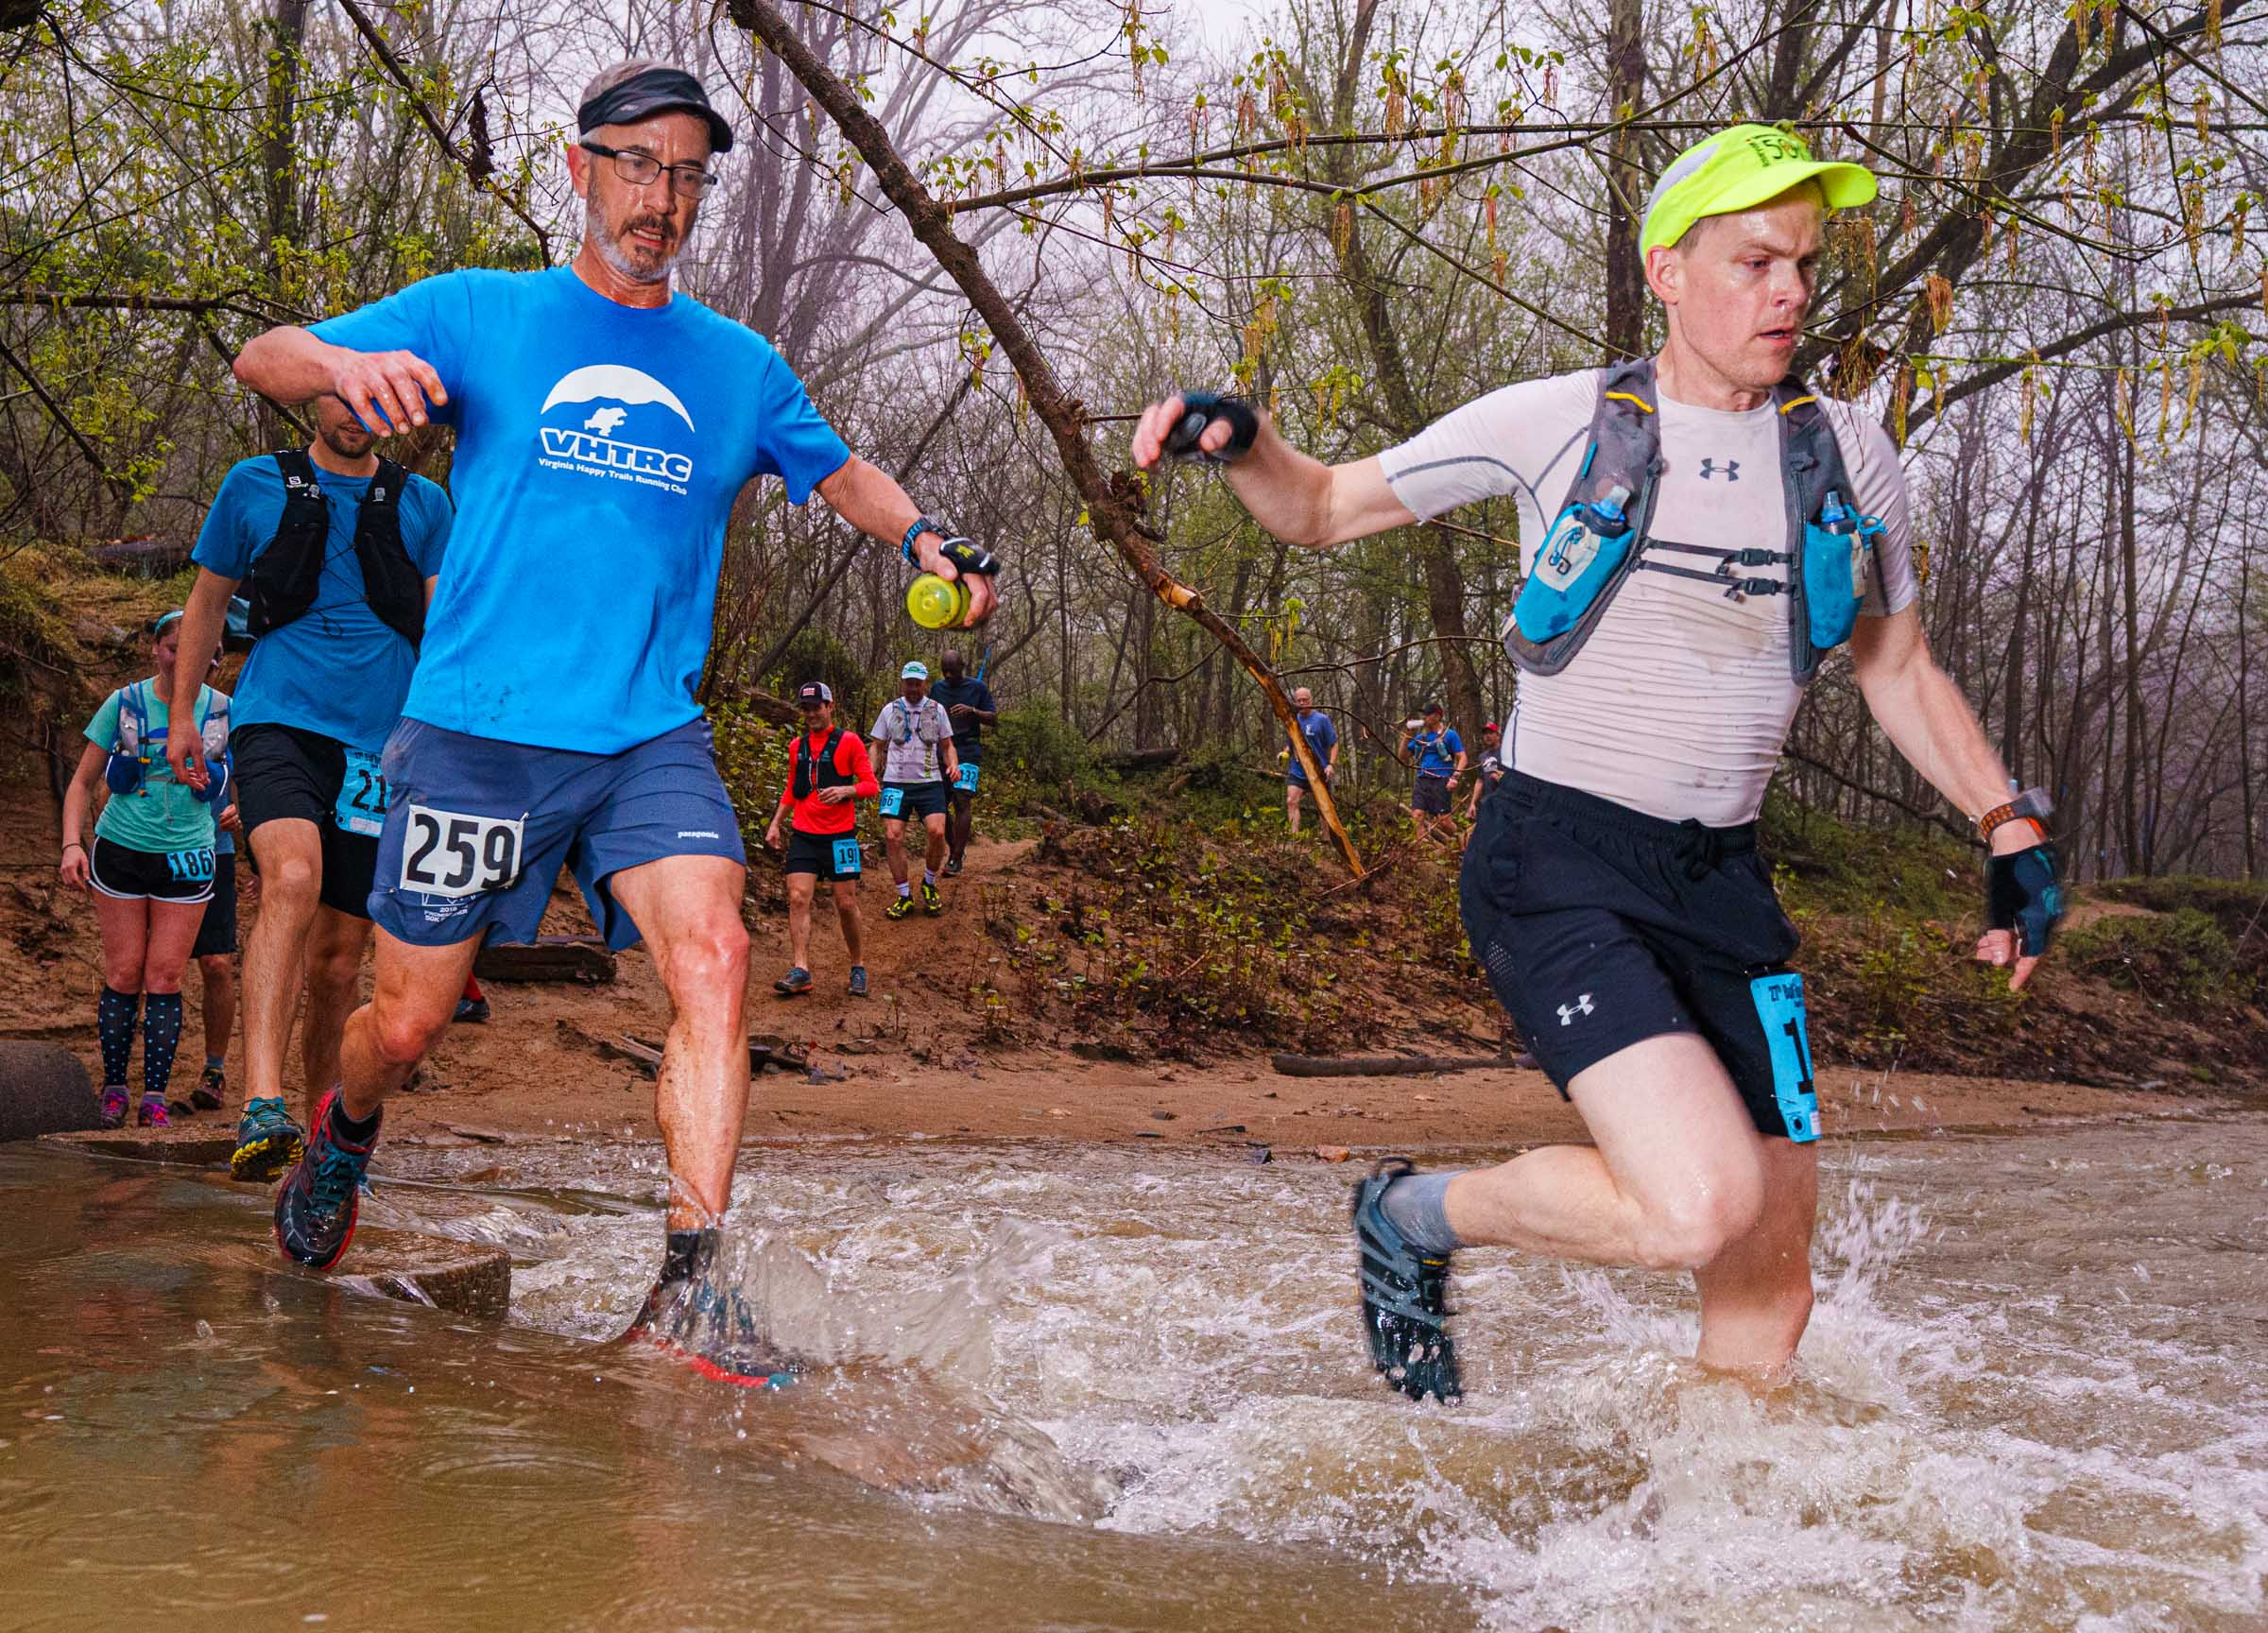 Runners crossing Popes Head Creek during the early miles of the 2019 BRR